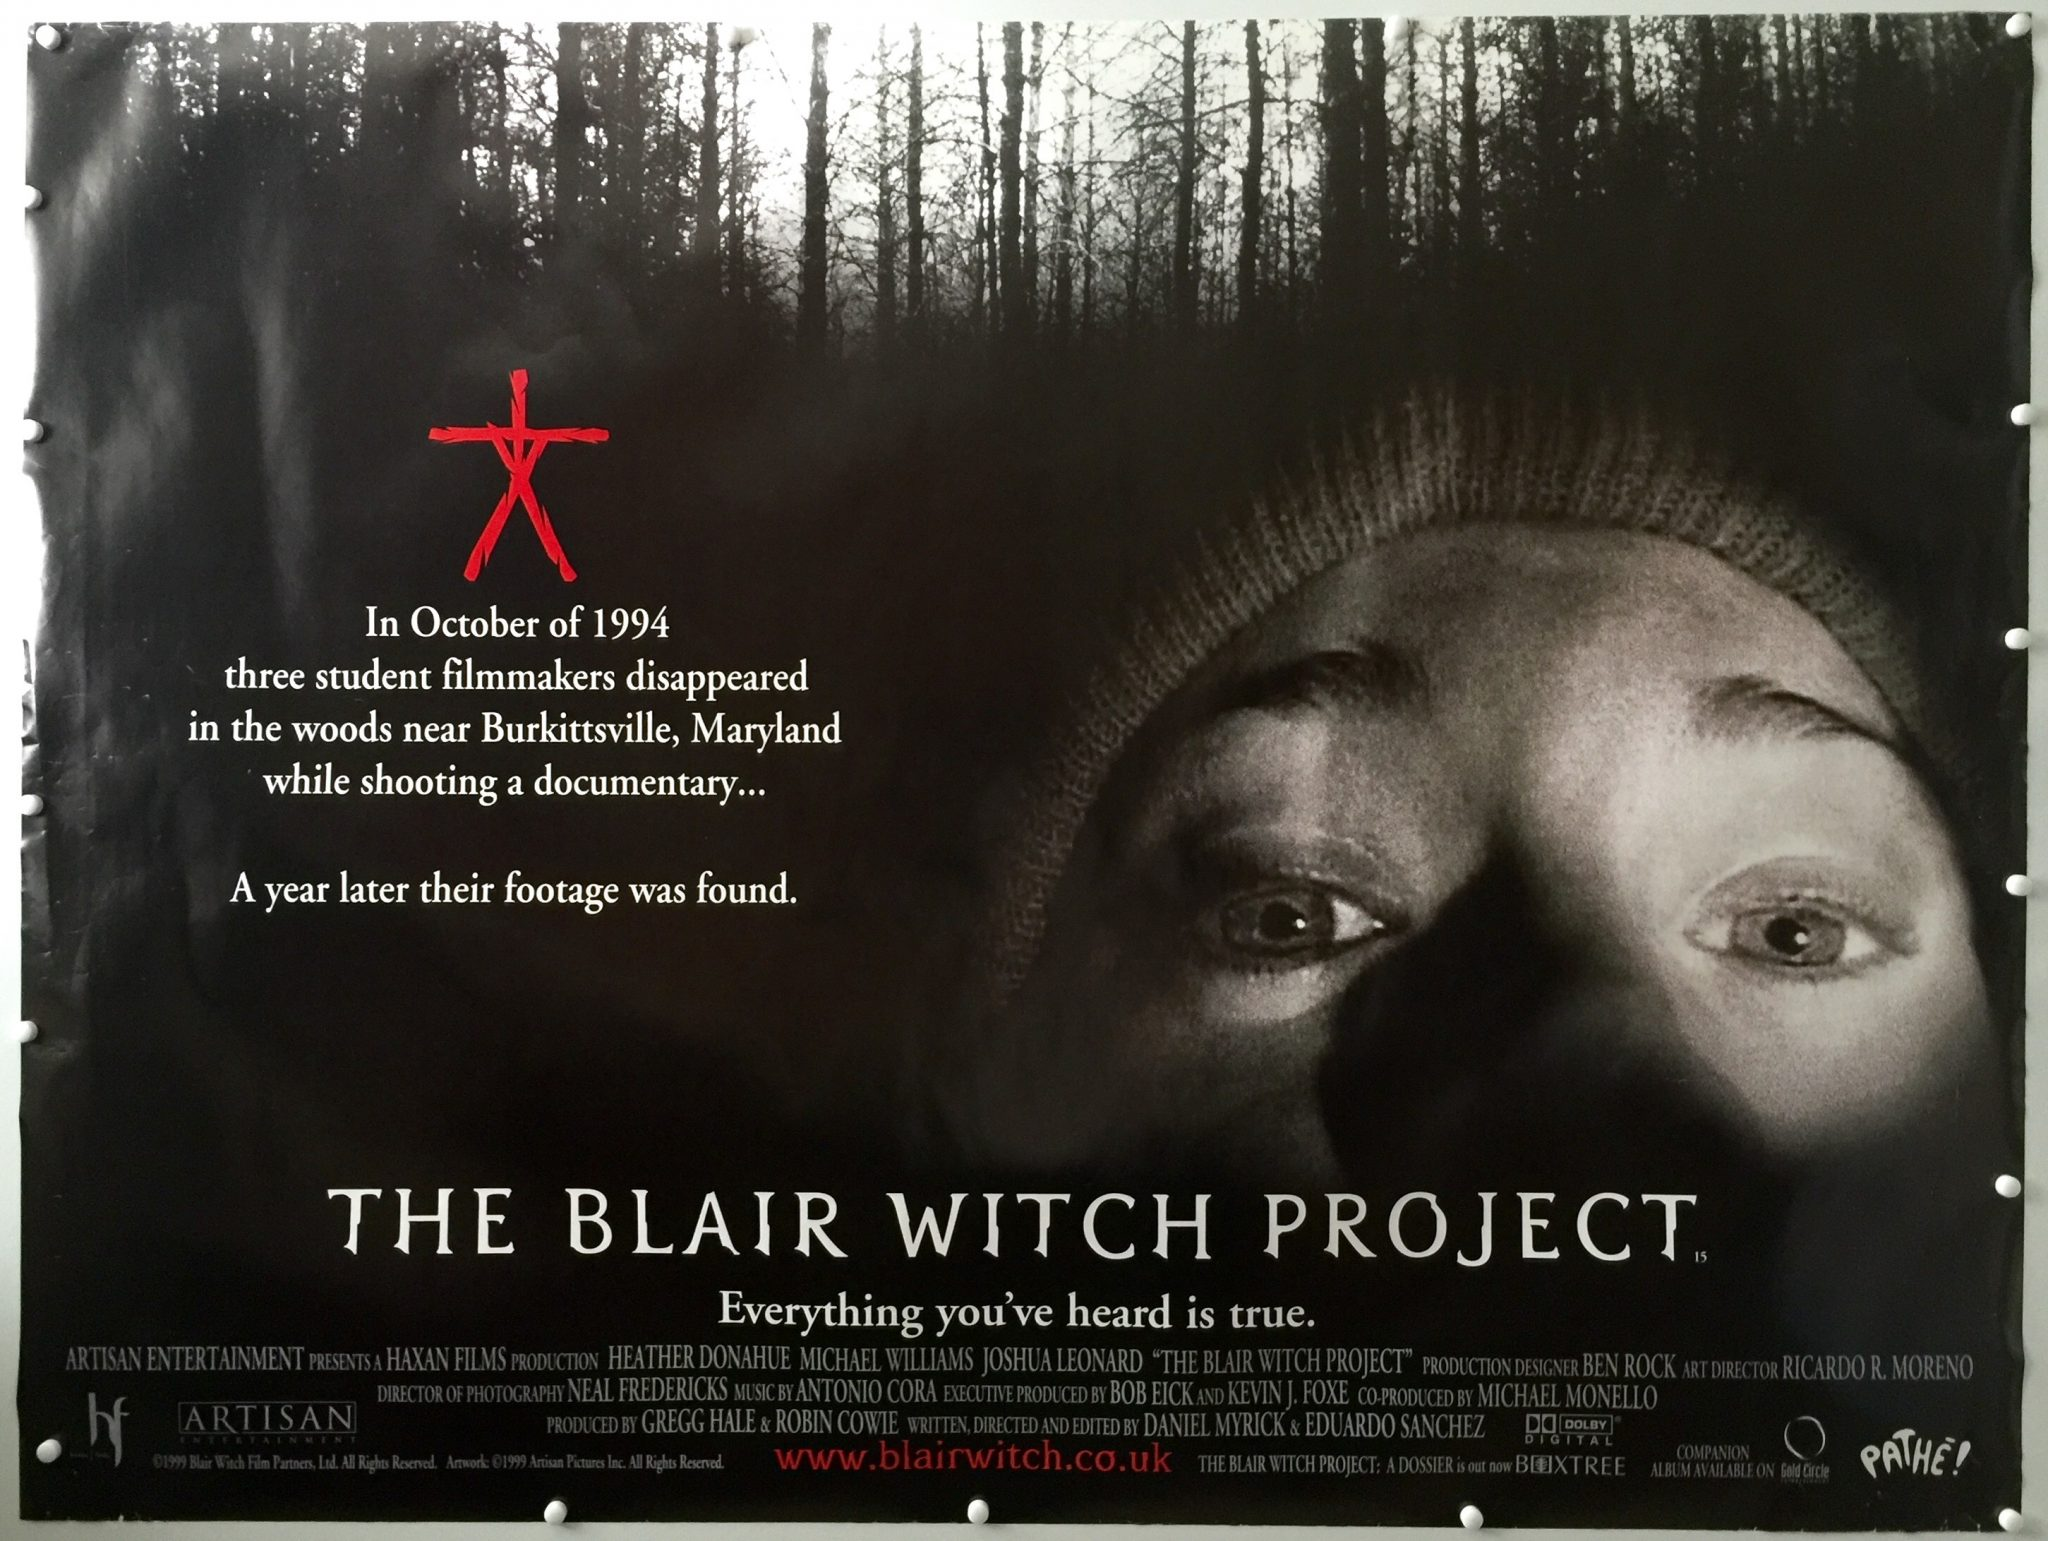 Movie Posters 1999: The Blair Witch Project